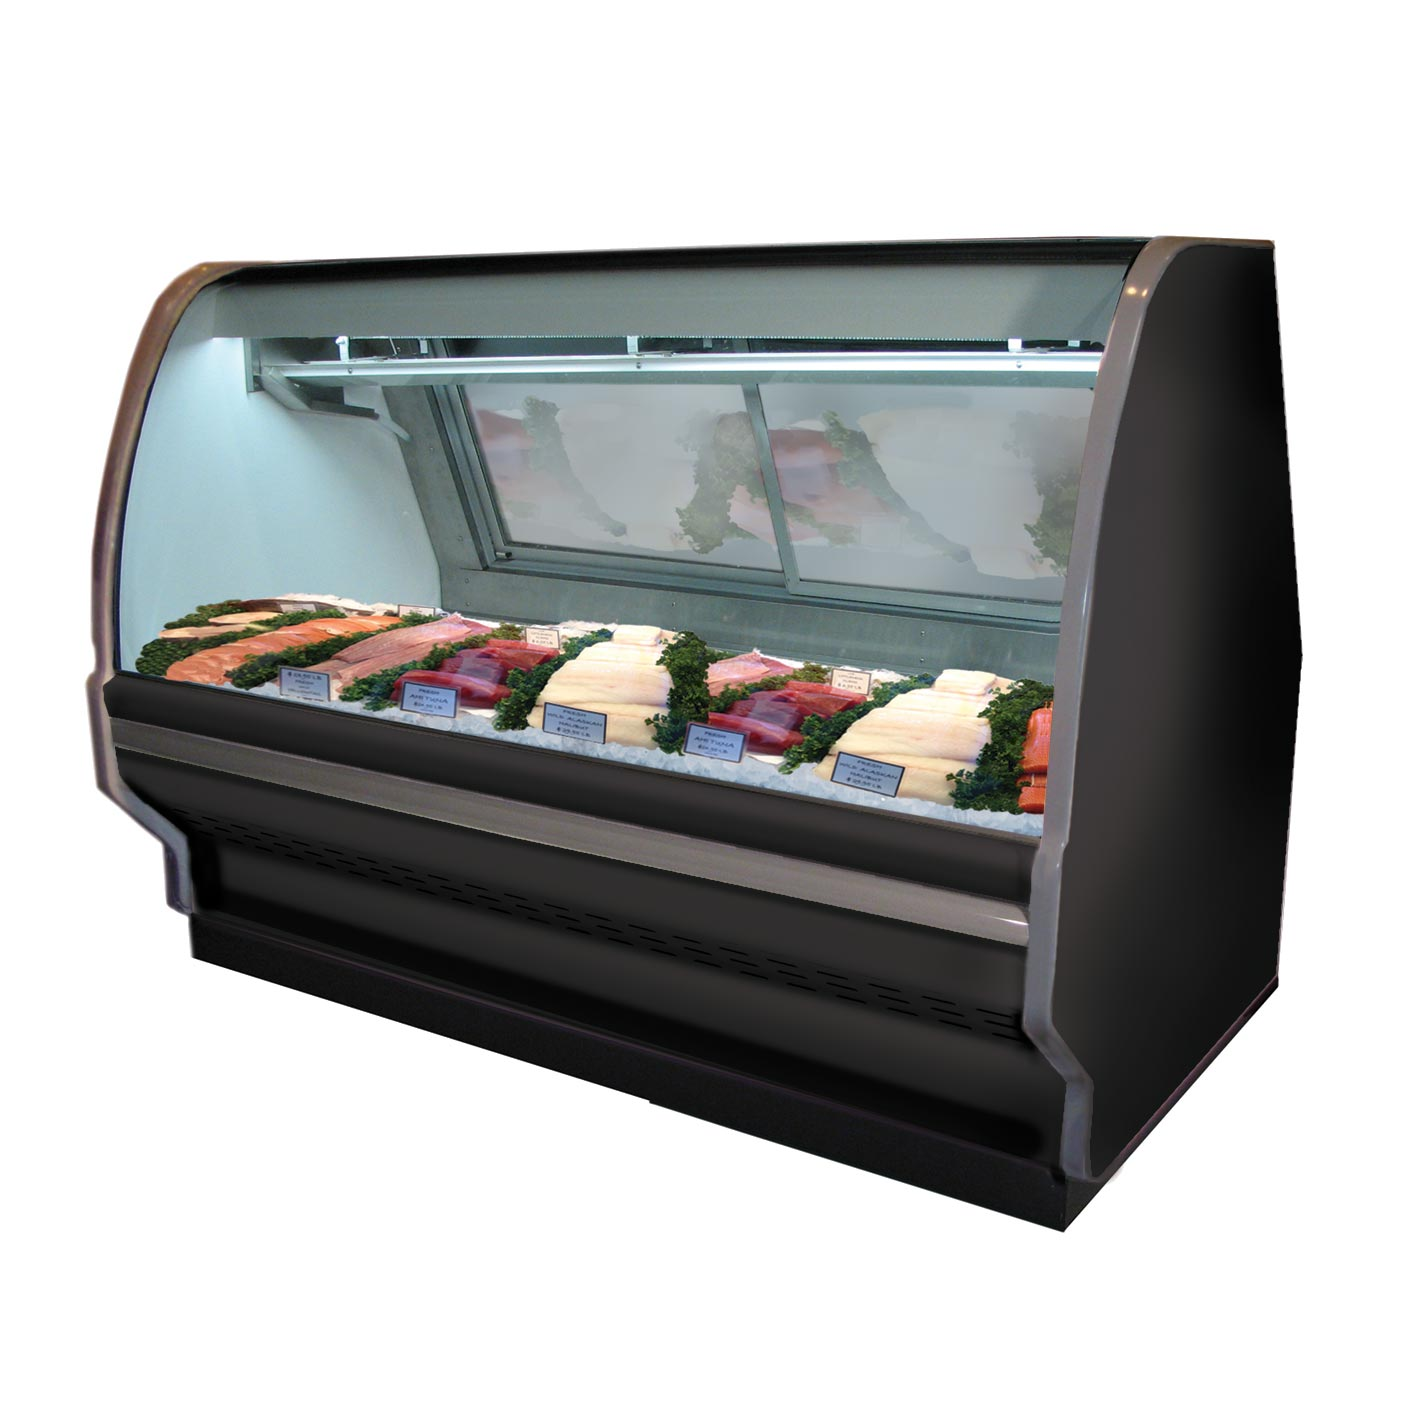 Howard-McCray SC-CFS40E-6C-BE-LED display case, deli seafood / poultry